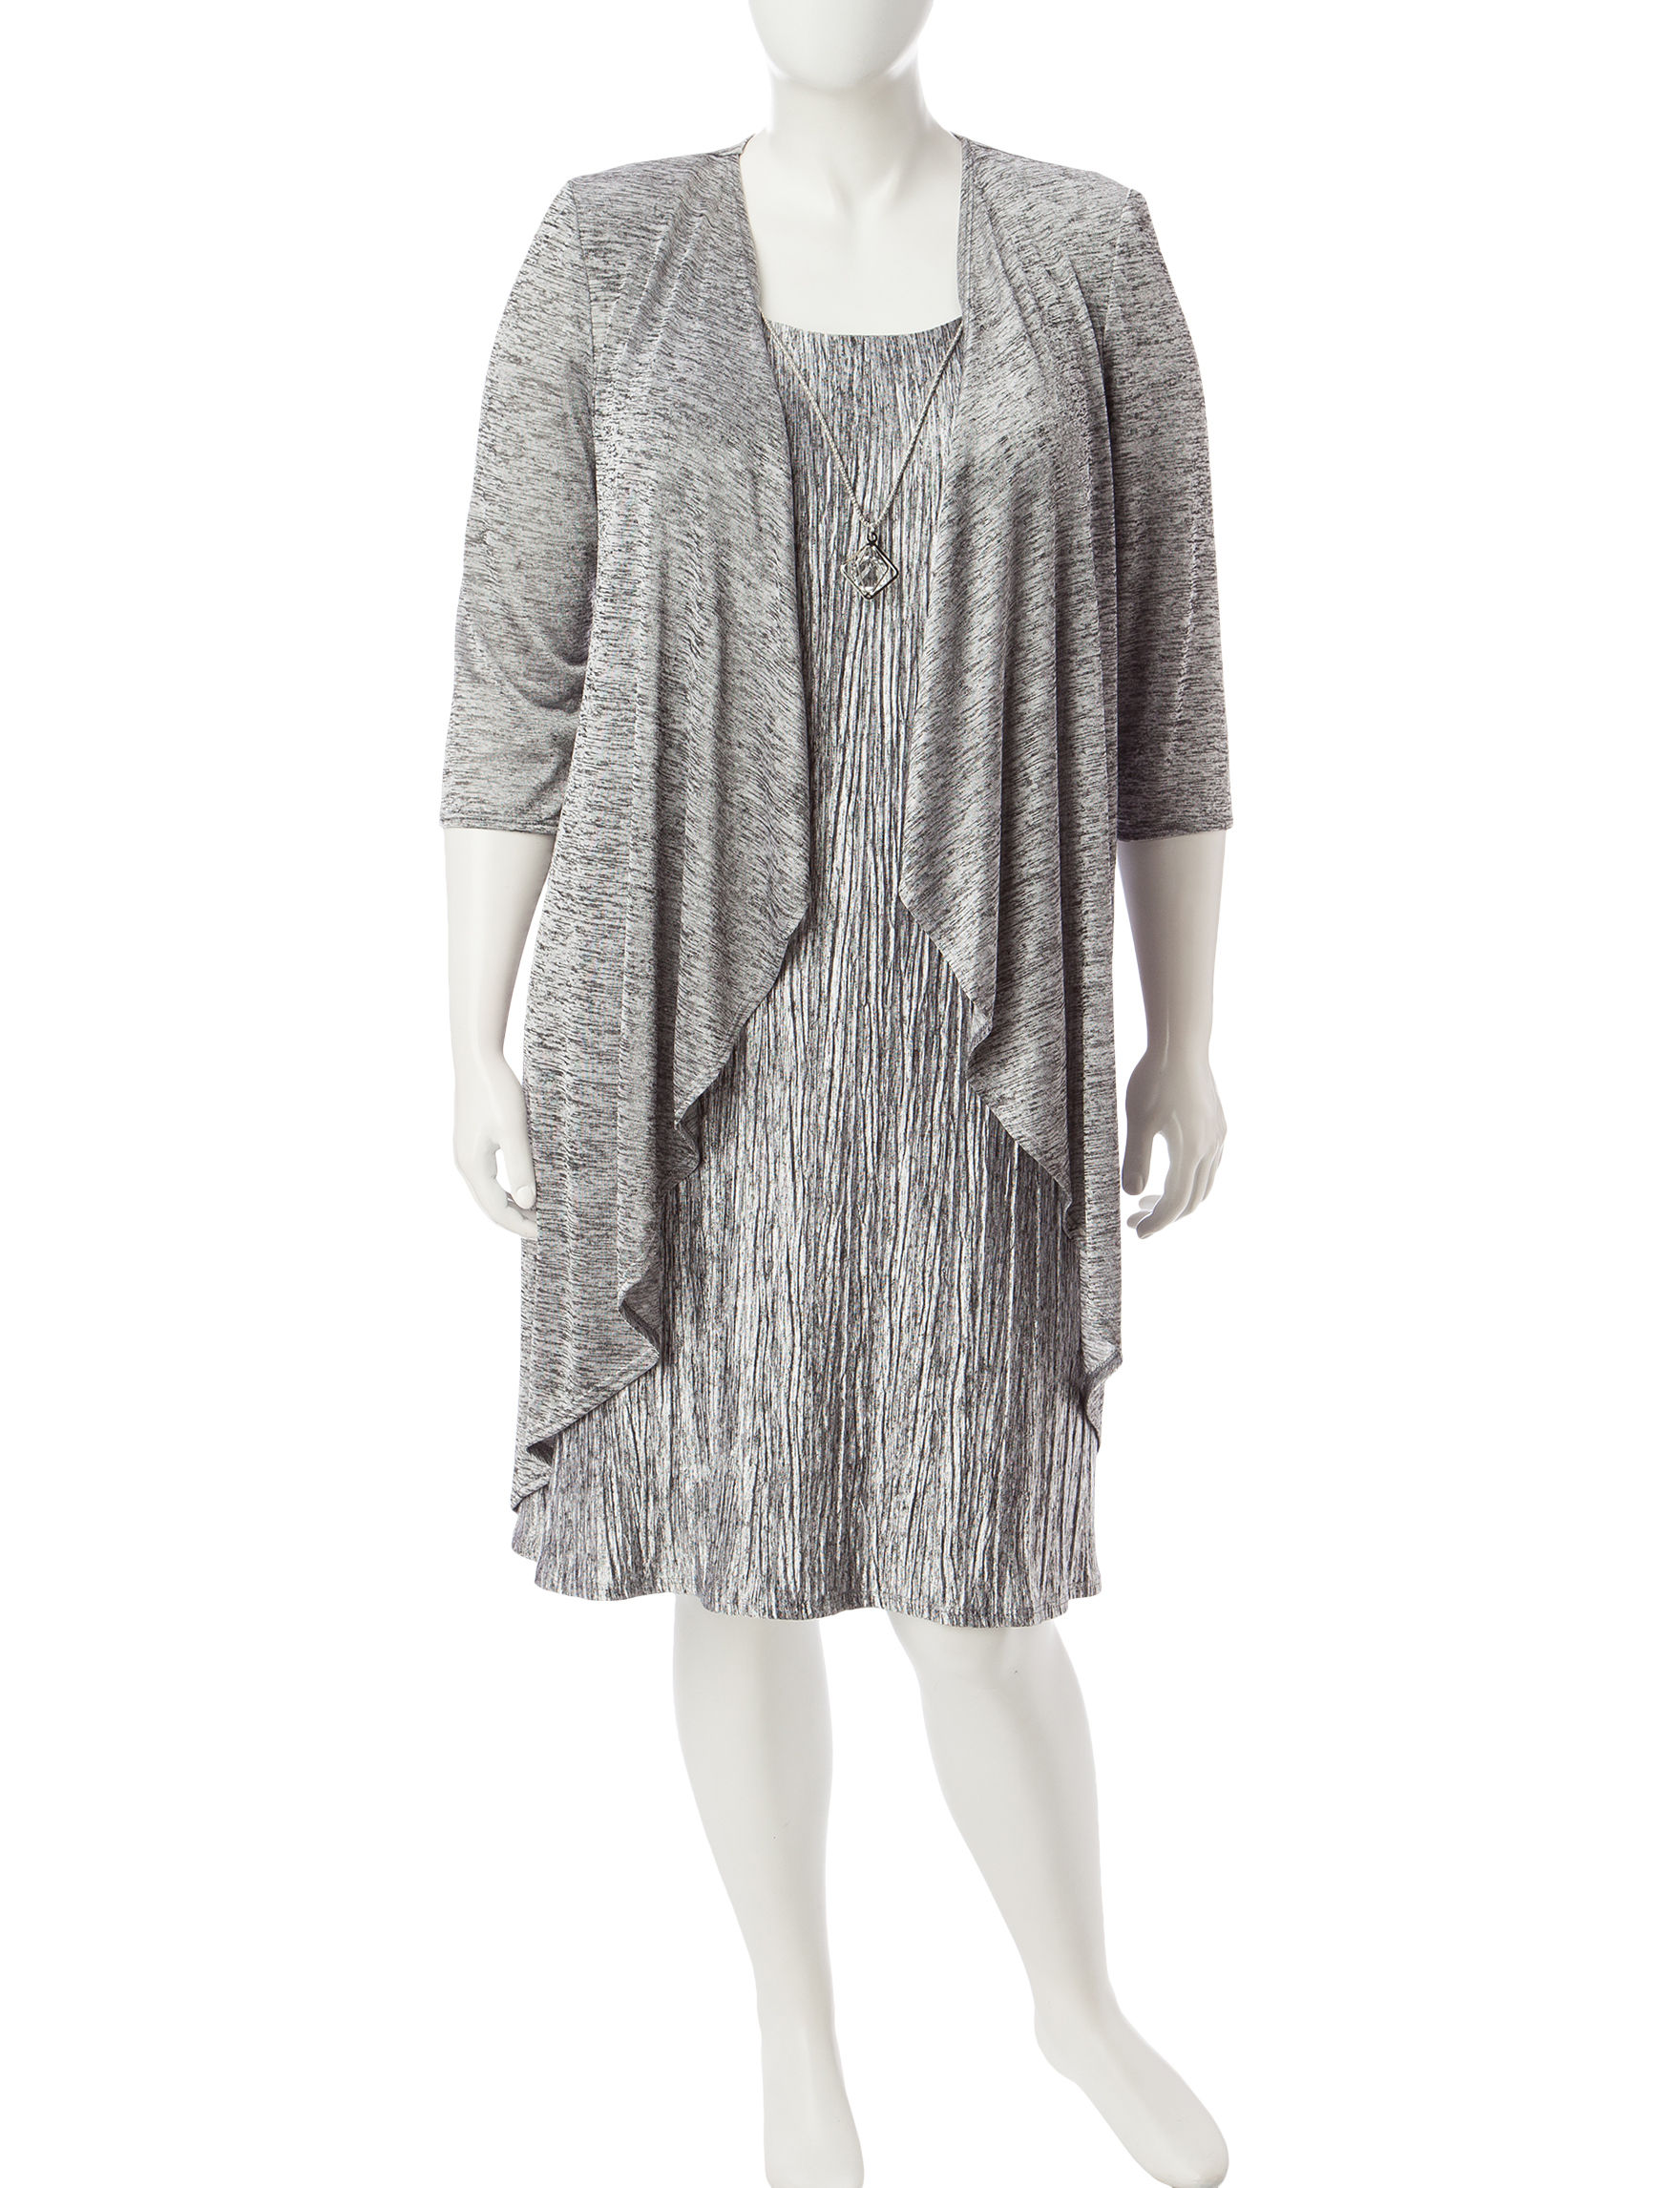 R & M Richards Black / Silver Everyday & Casual Jacket Dresses